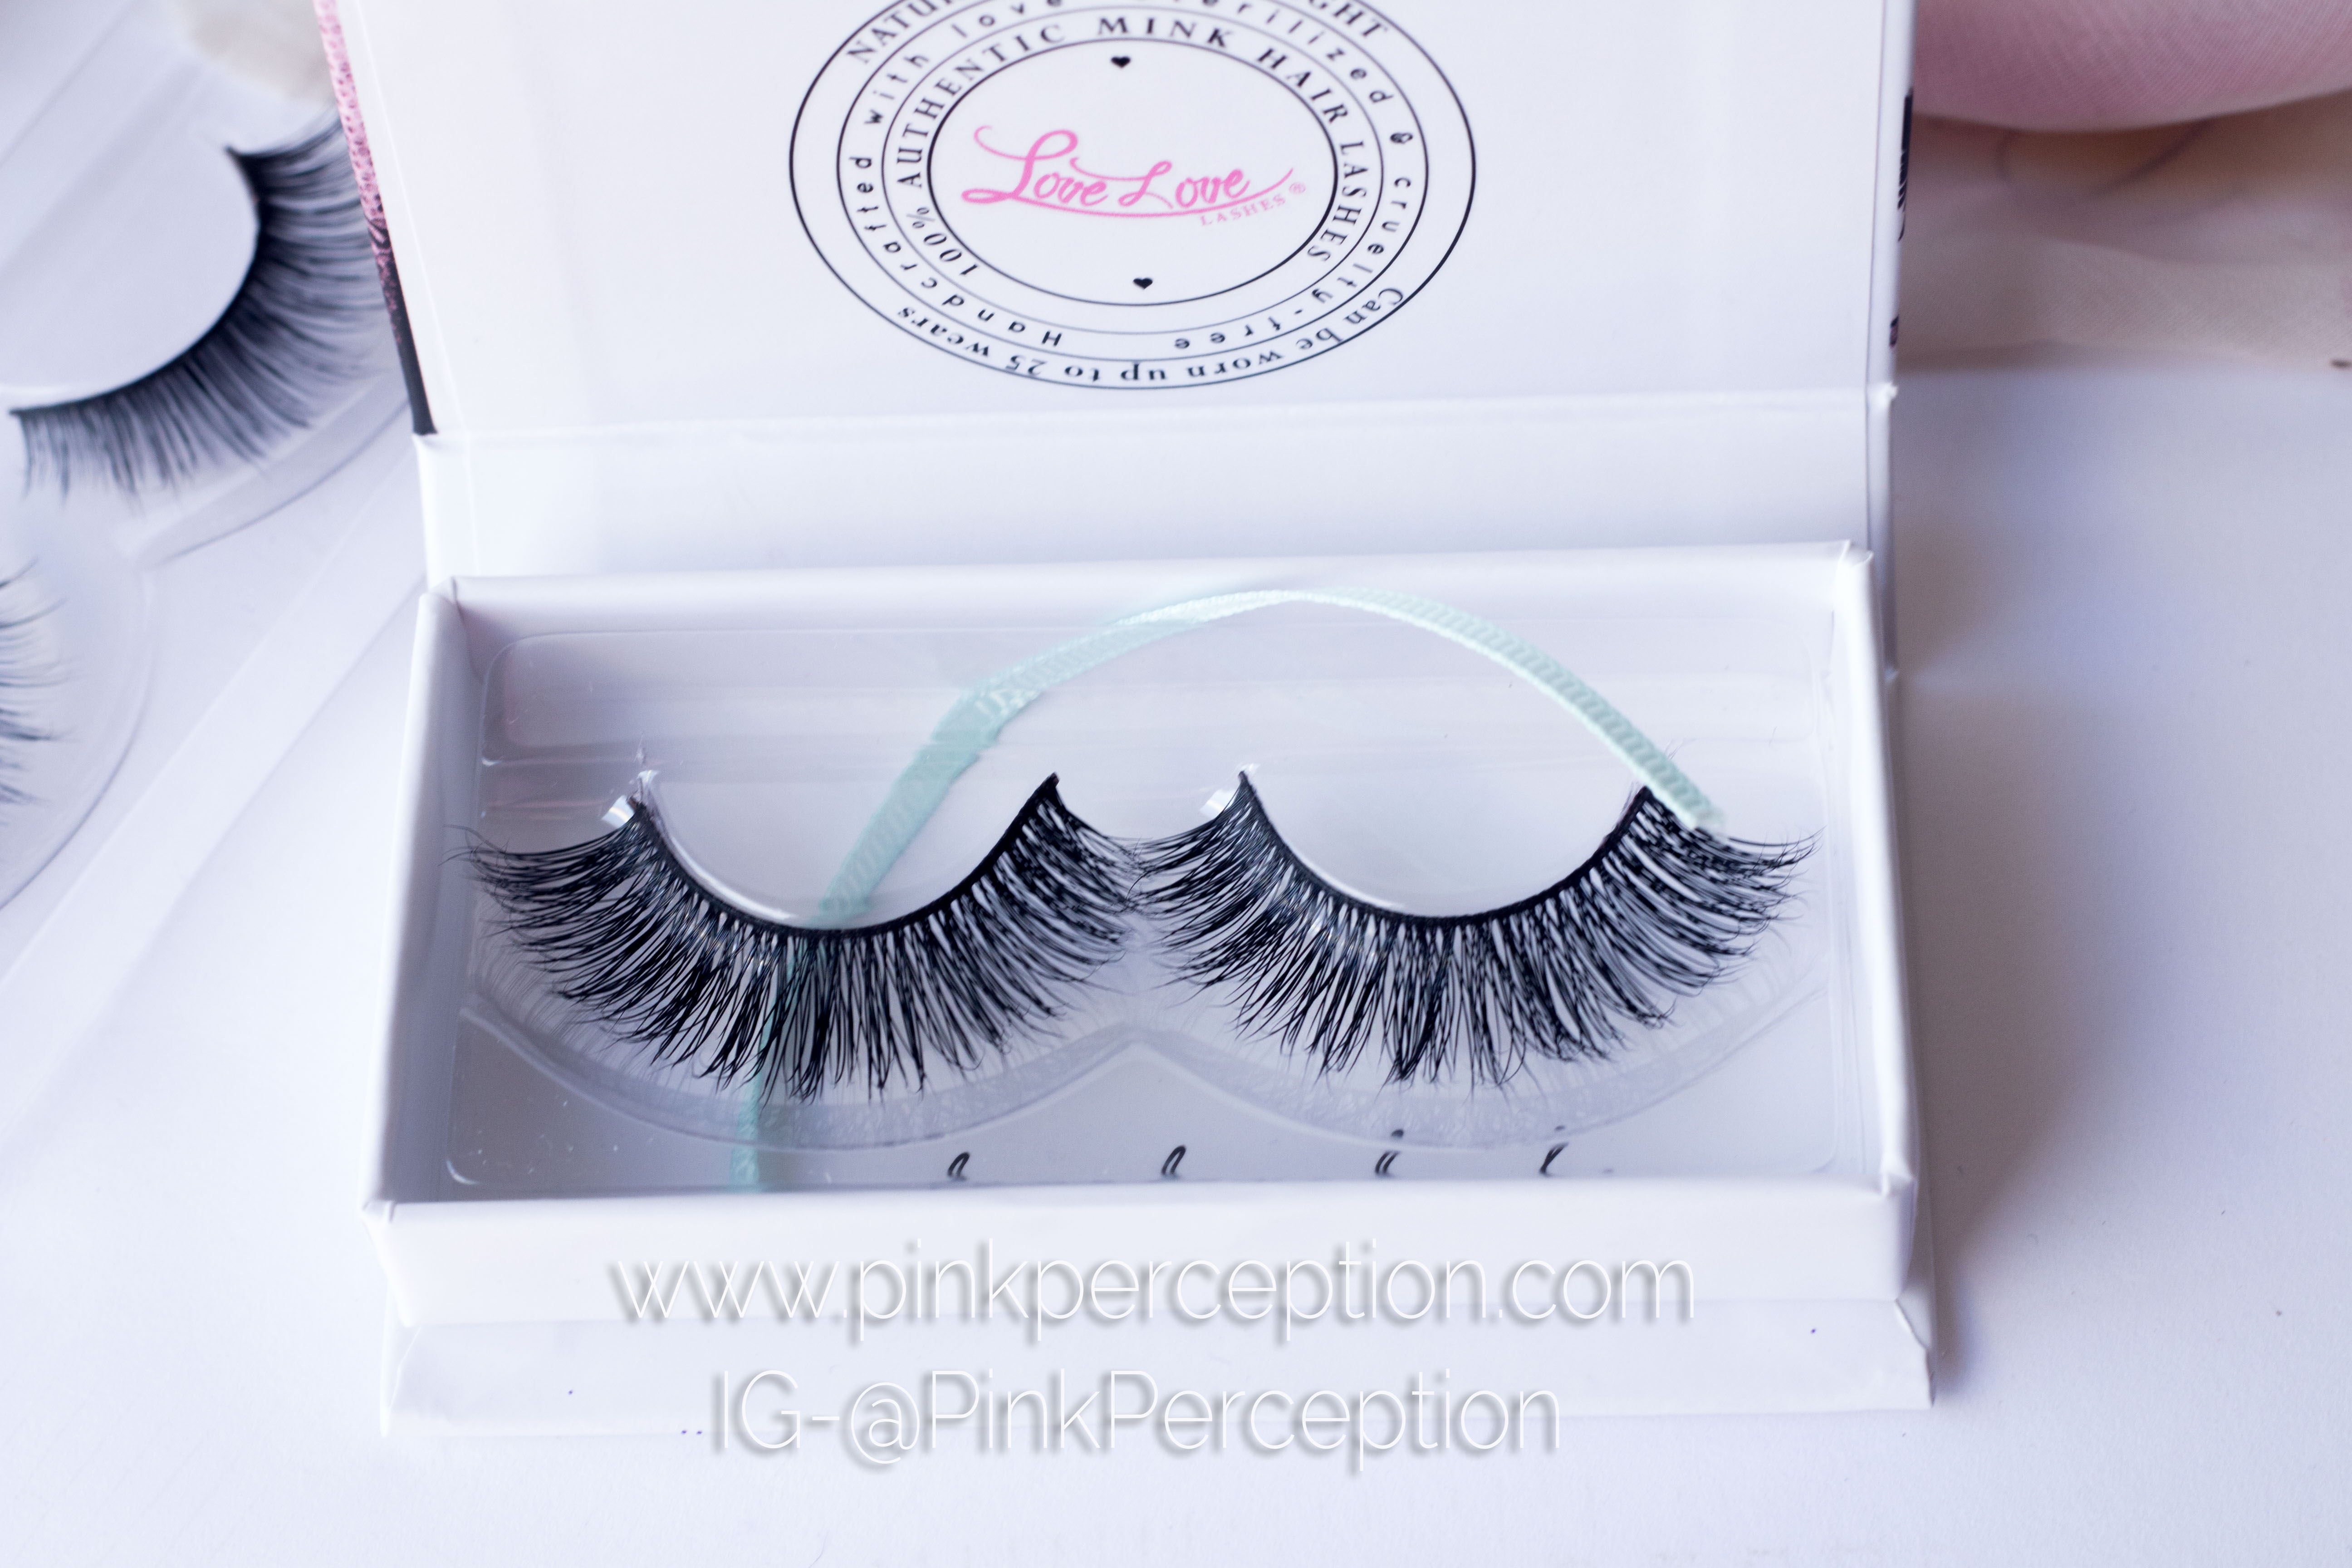 hollywook mink lashes lovelove lashes pink perception